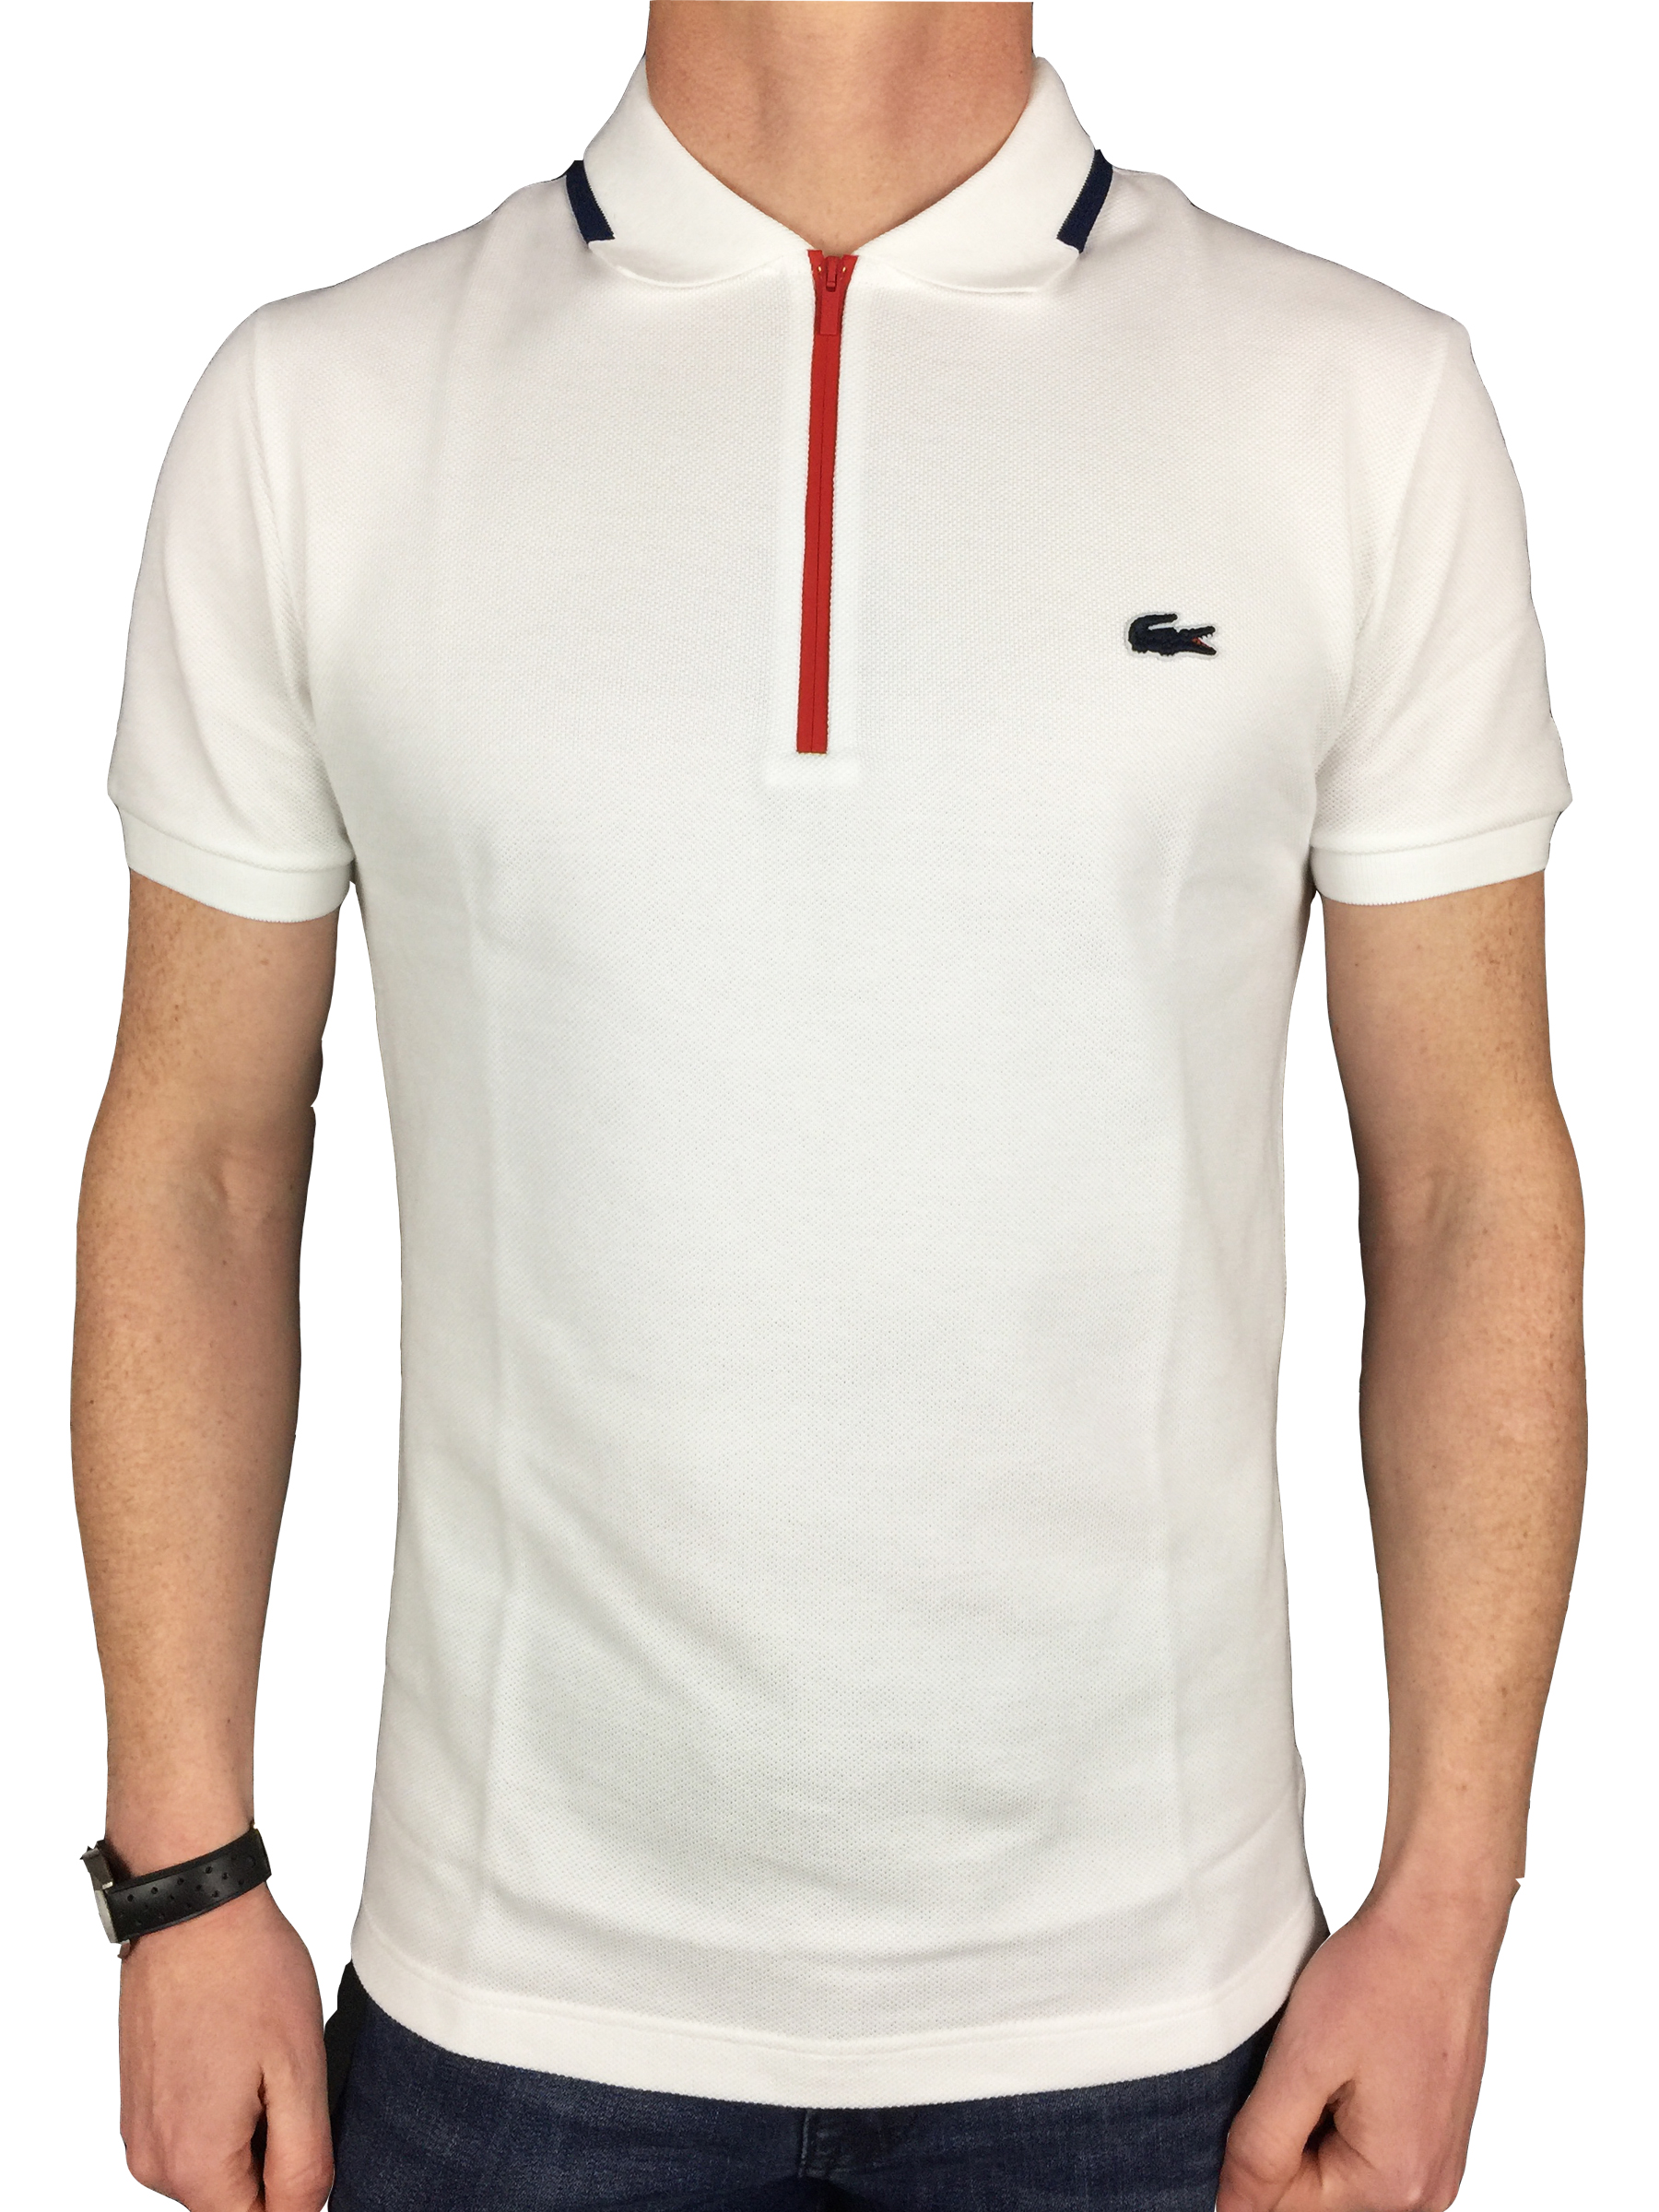 Lacoste mens s s 3 4 zip collar tip polo shirt in white ebay for Lacoste size 4 polo shirt